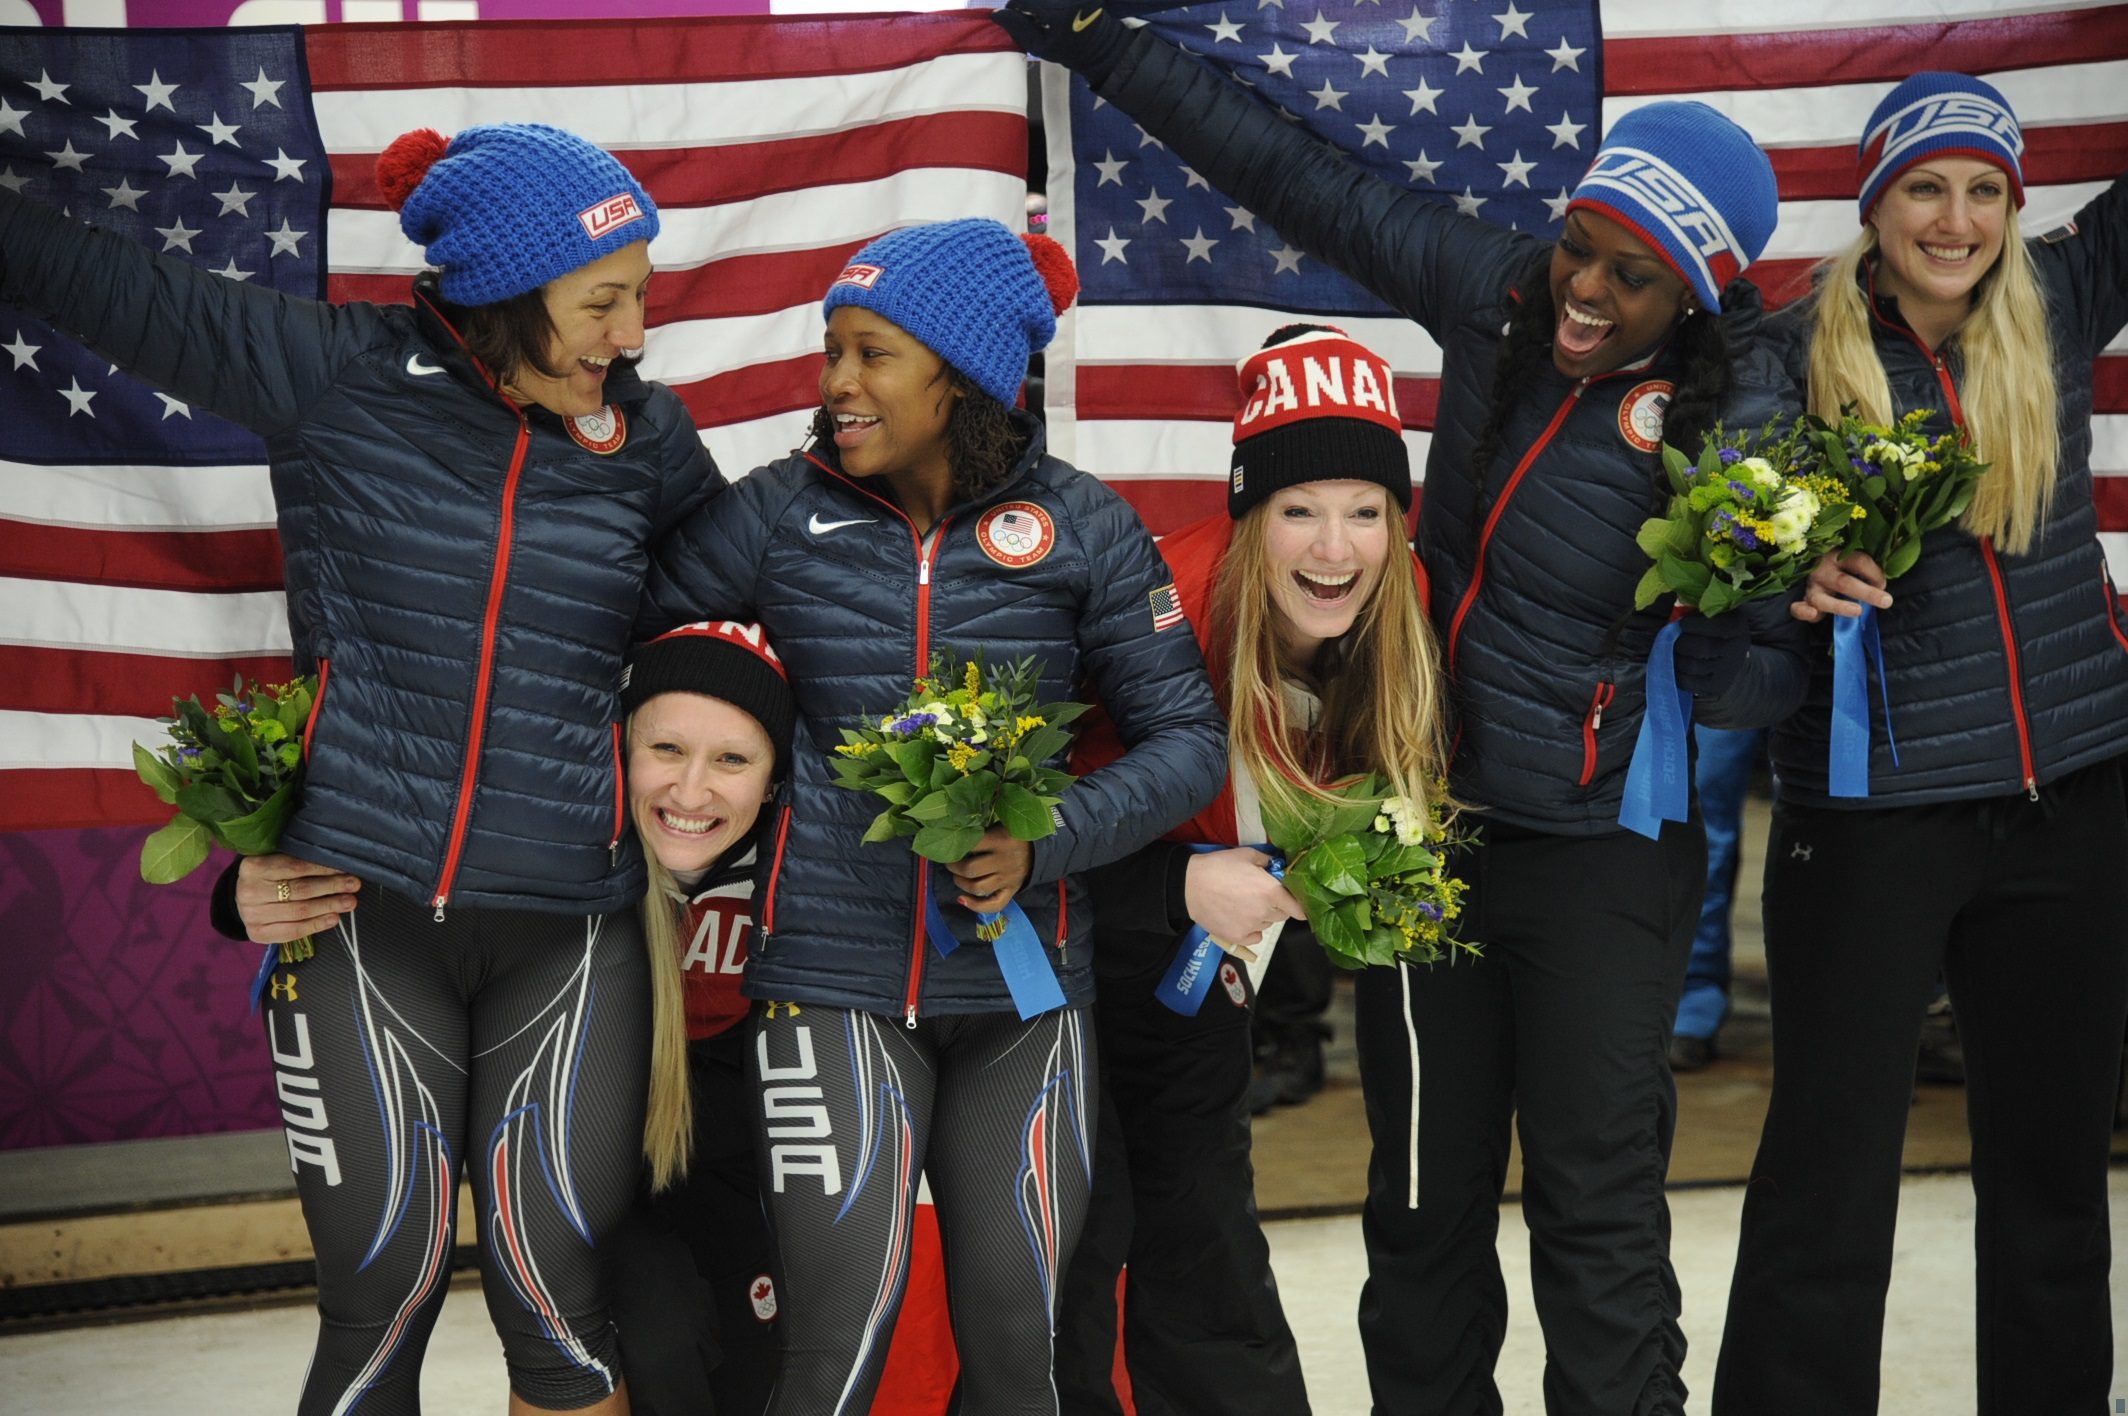 Black Female Track Stars Make History At Winter Olympics Winning Silver And Bronze Medals